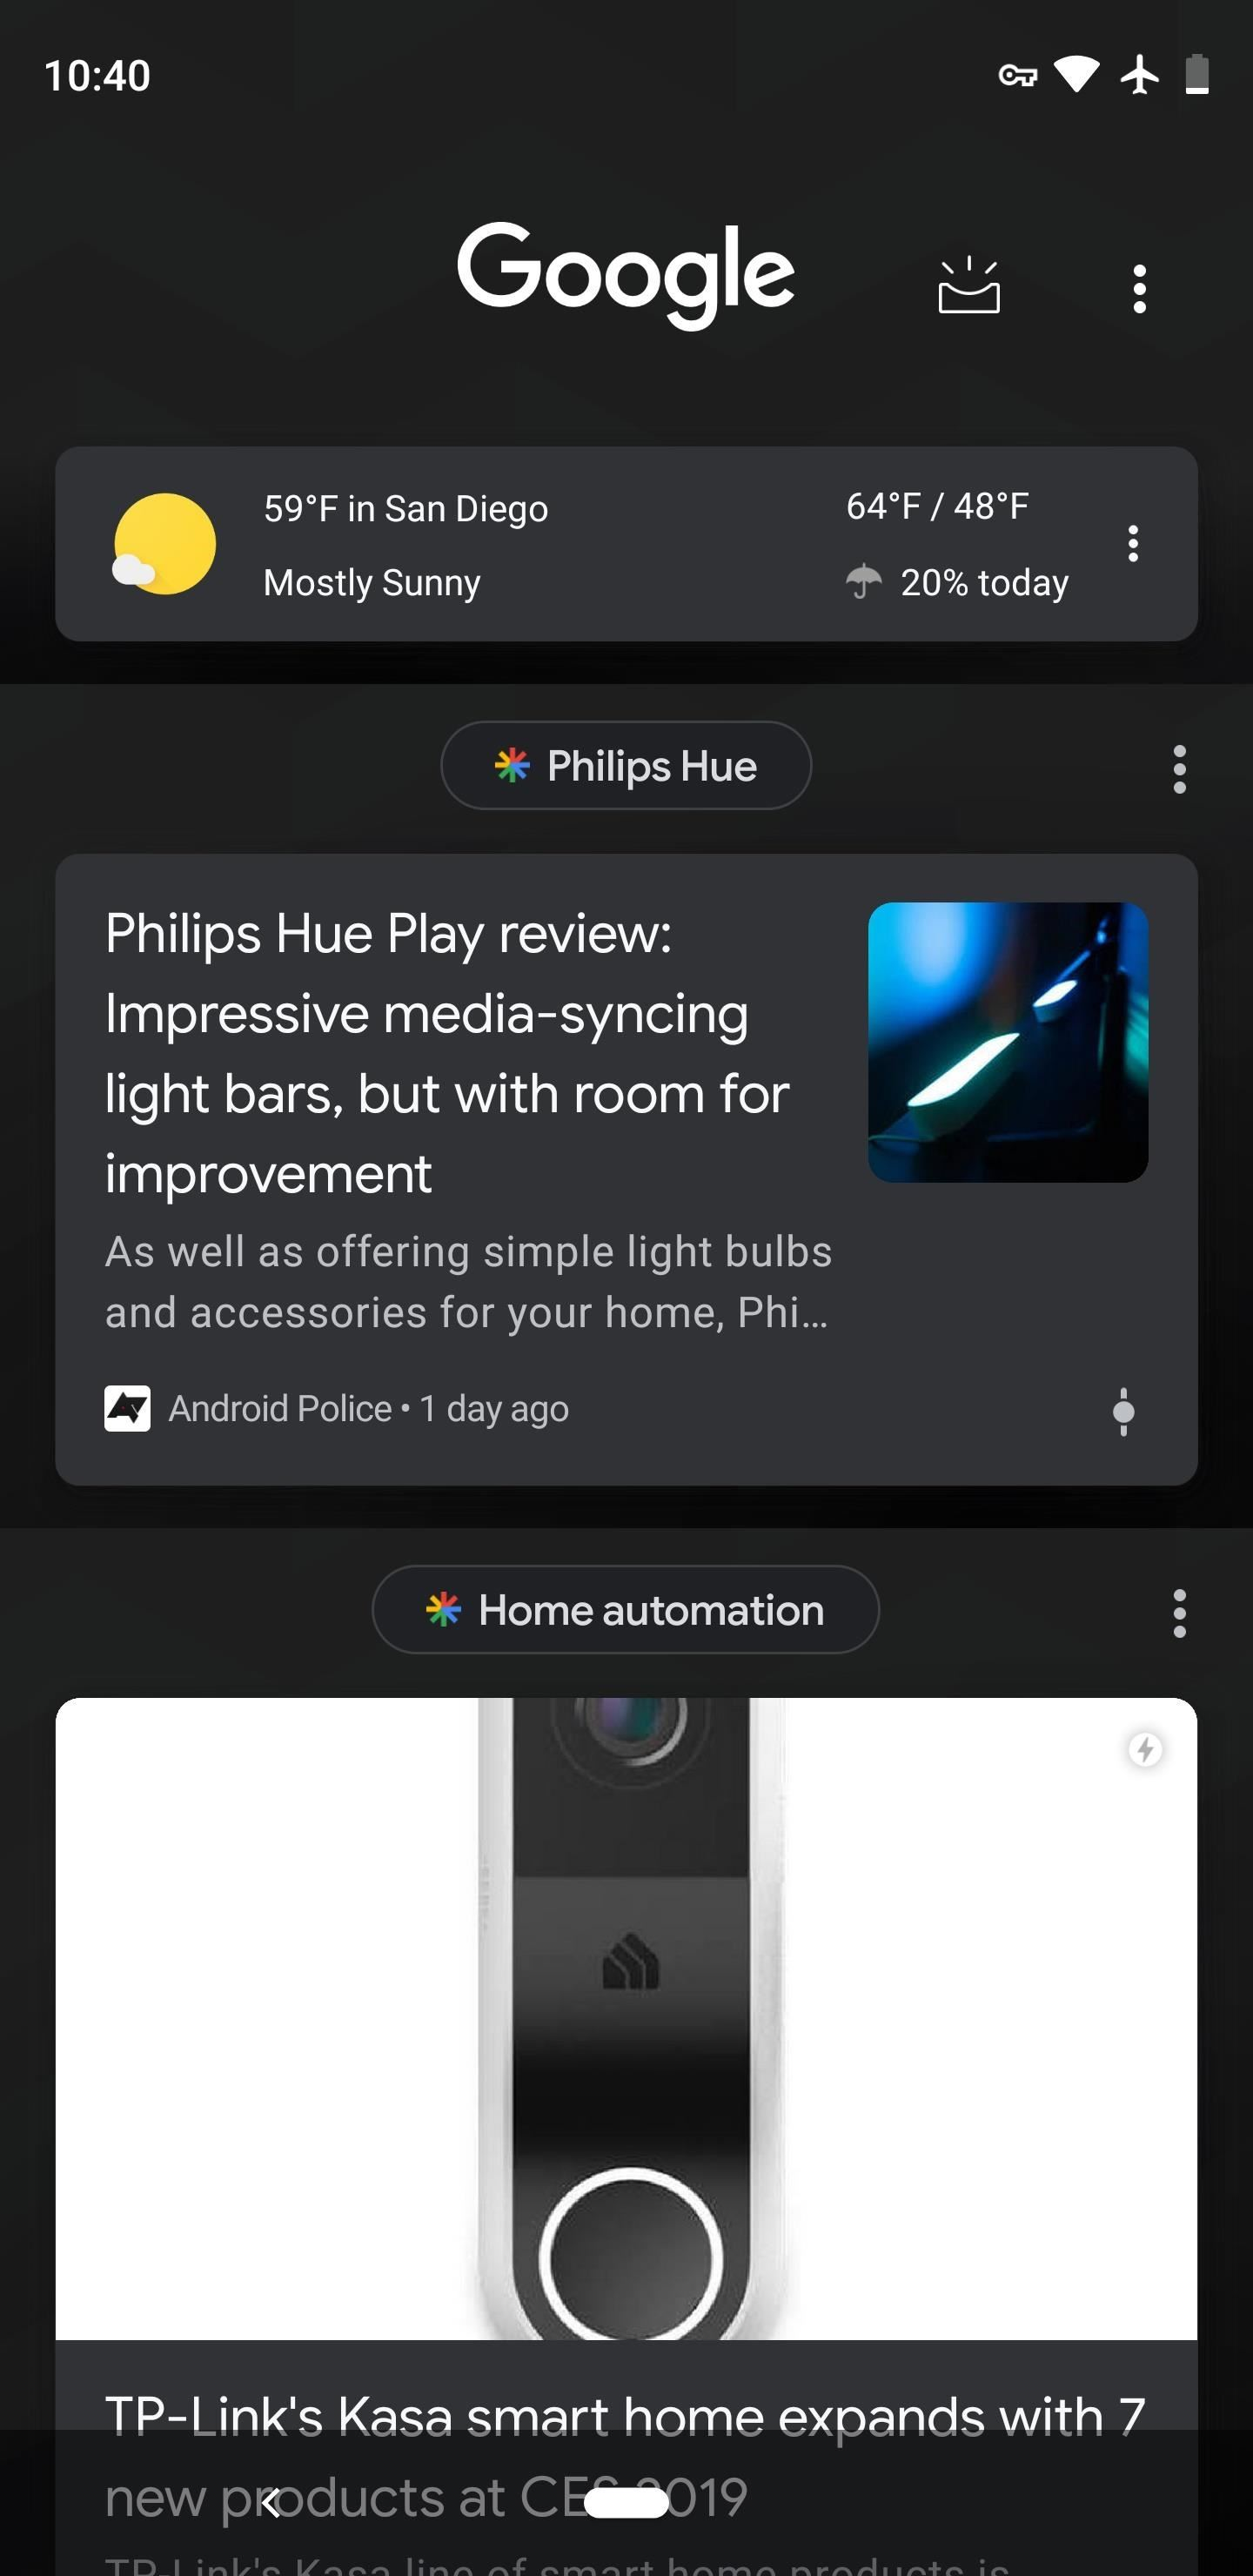 How to Enable Dark Mode in the Google Feed on Android